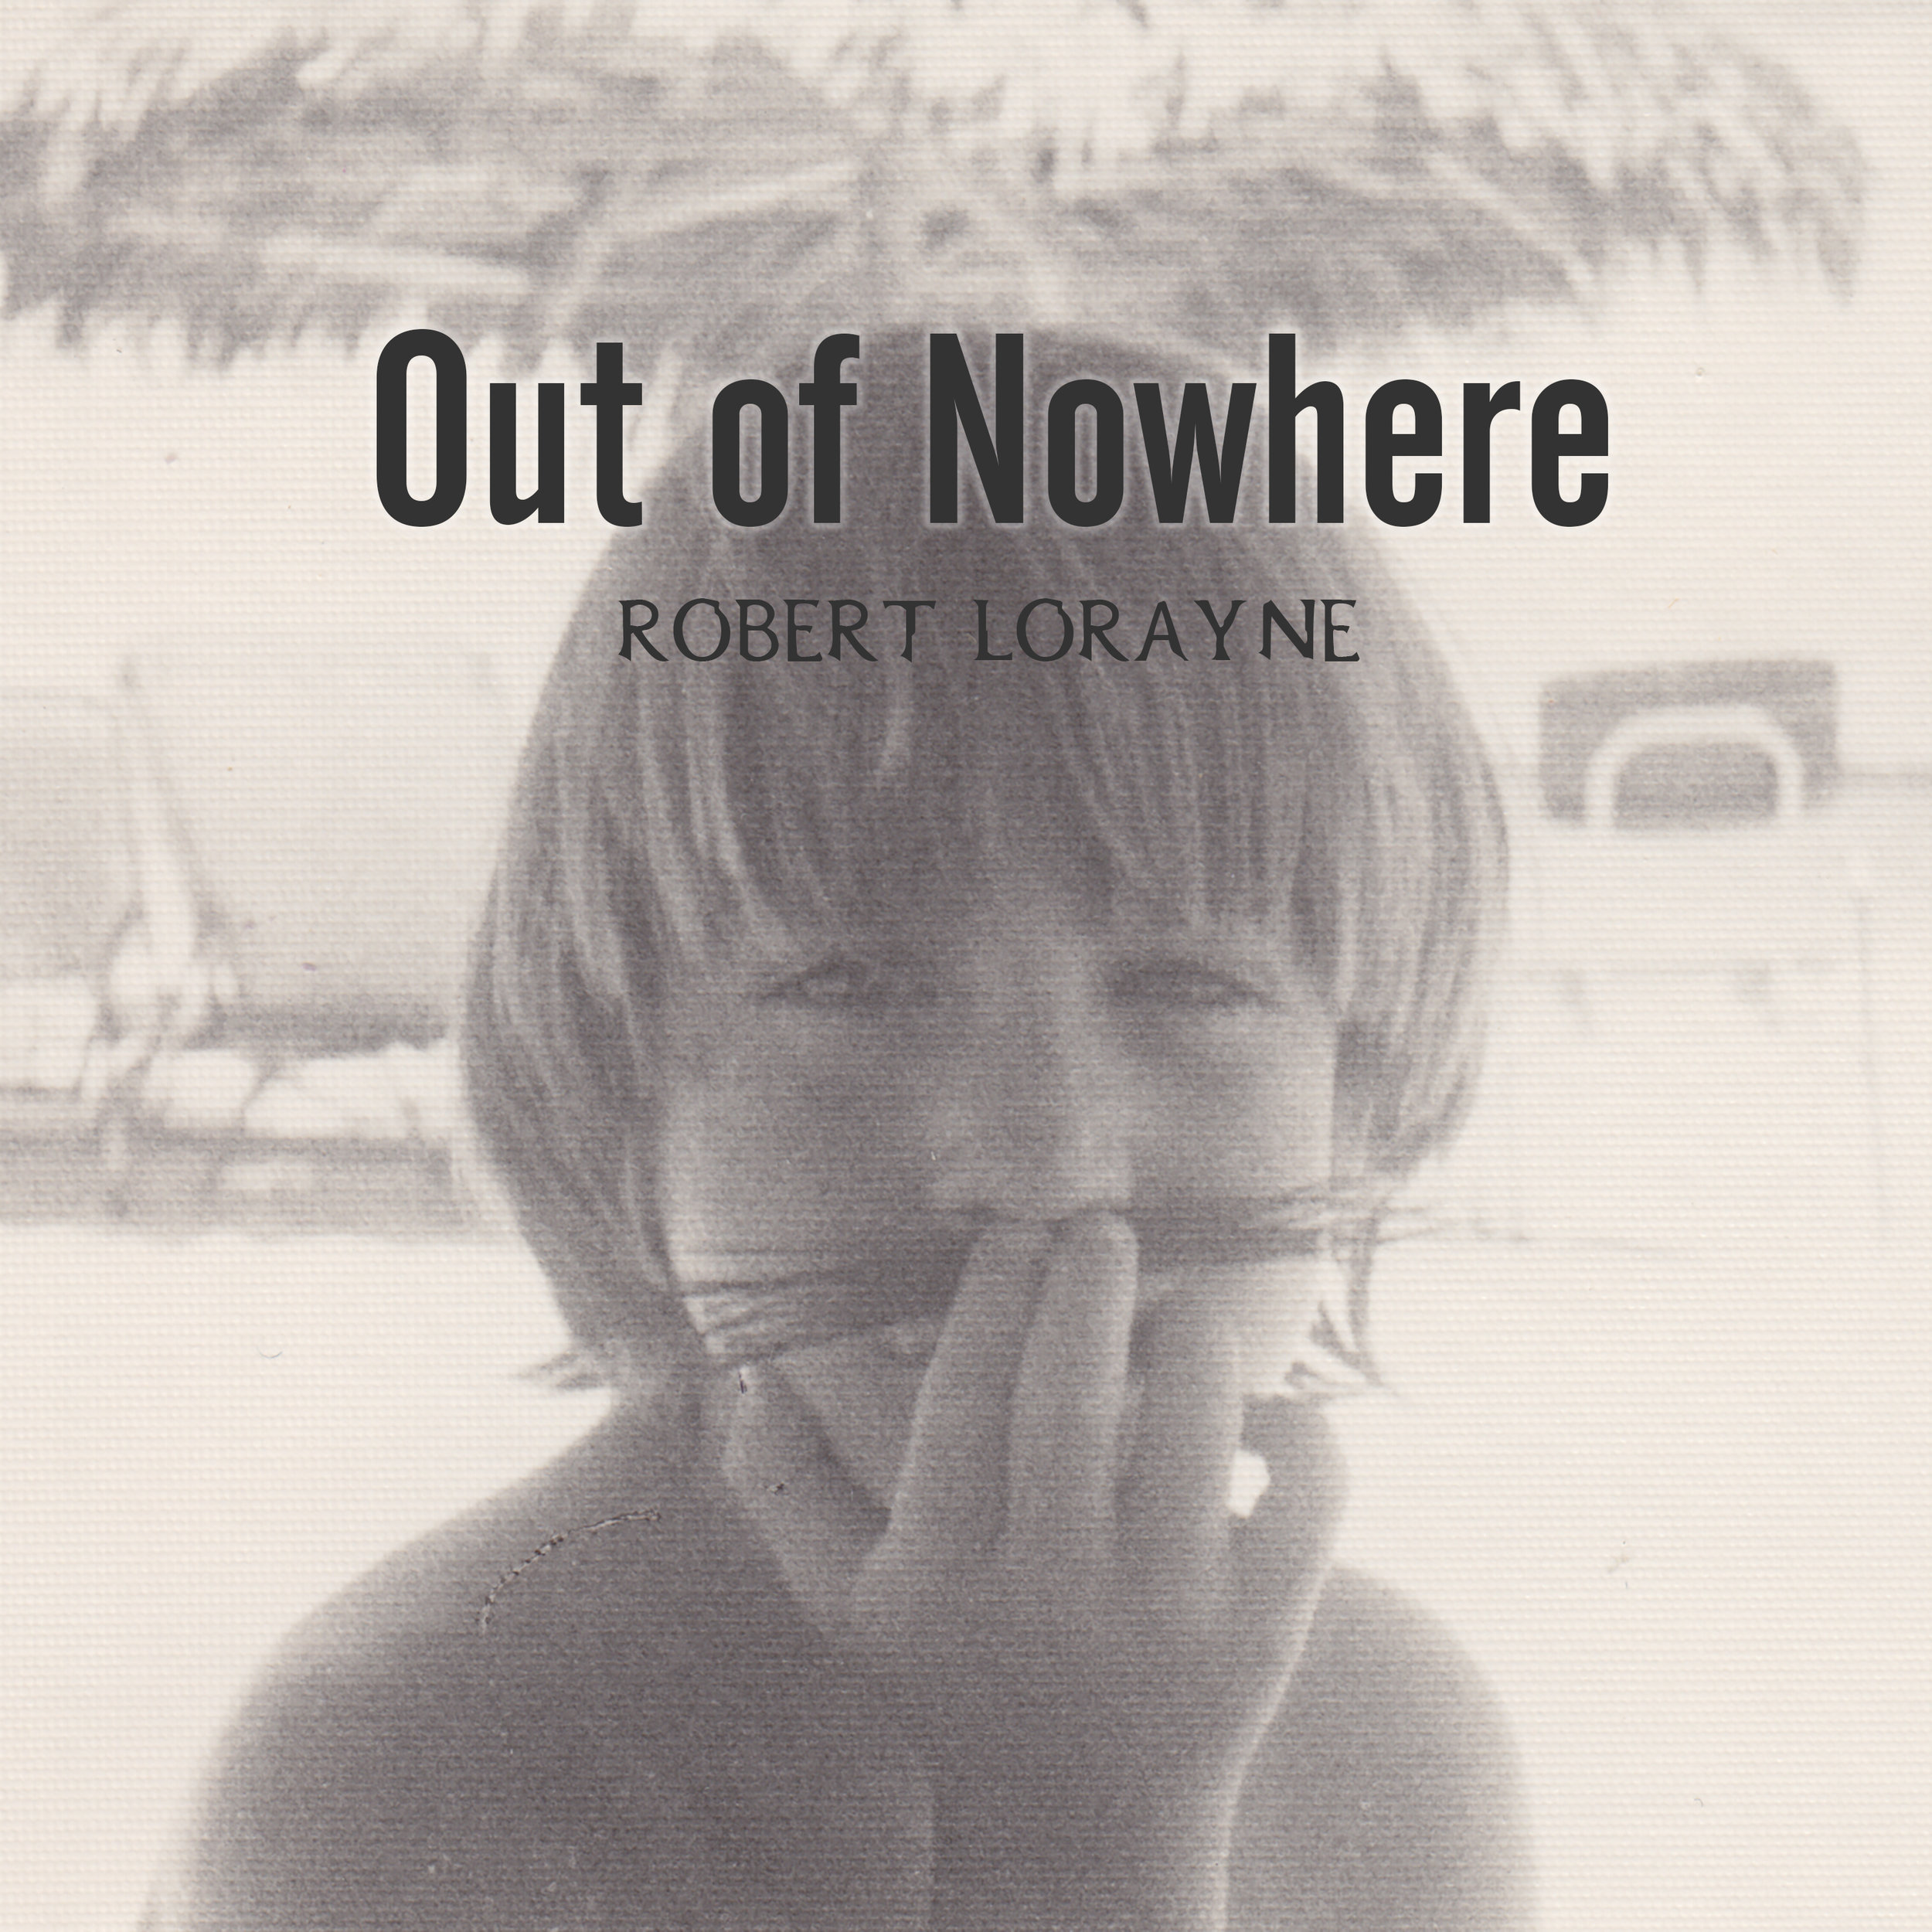 Robert_Lorayne_Out_of_Nowhere_cover.jpg